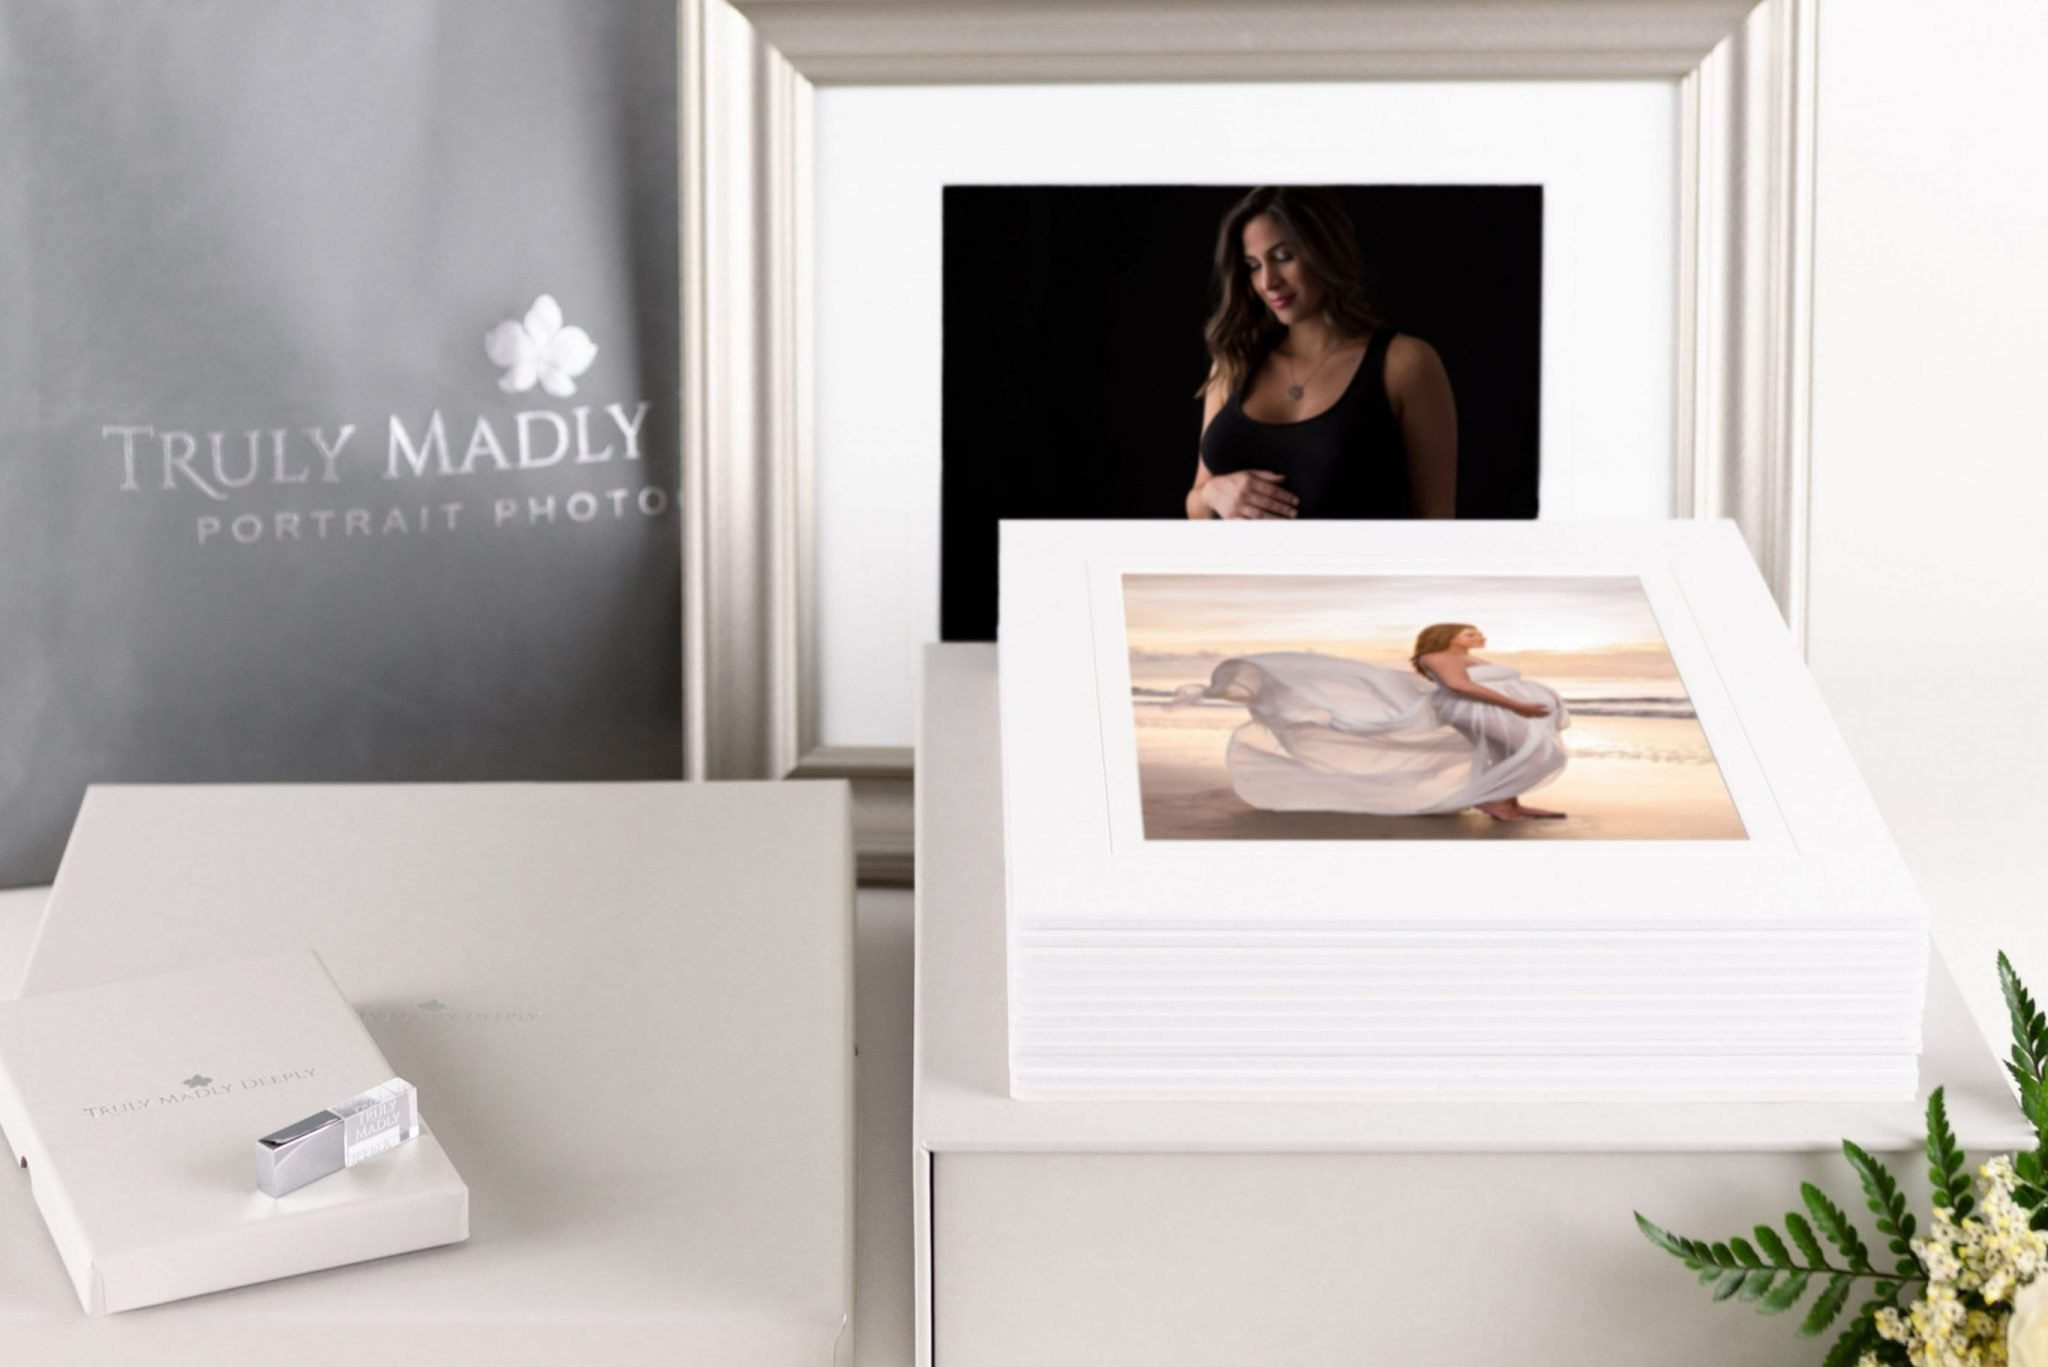 Maternity, newborn and family portrait prints and folio boxes by Truly Madly Deeply - maternity, newborn and family photography in Brevard County, Florida https://tmd.photo